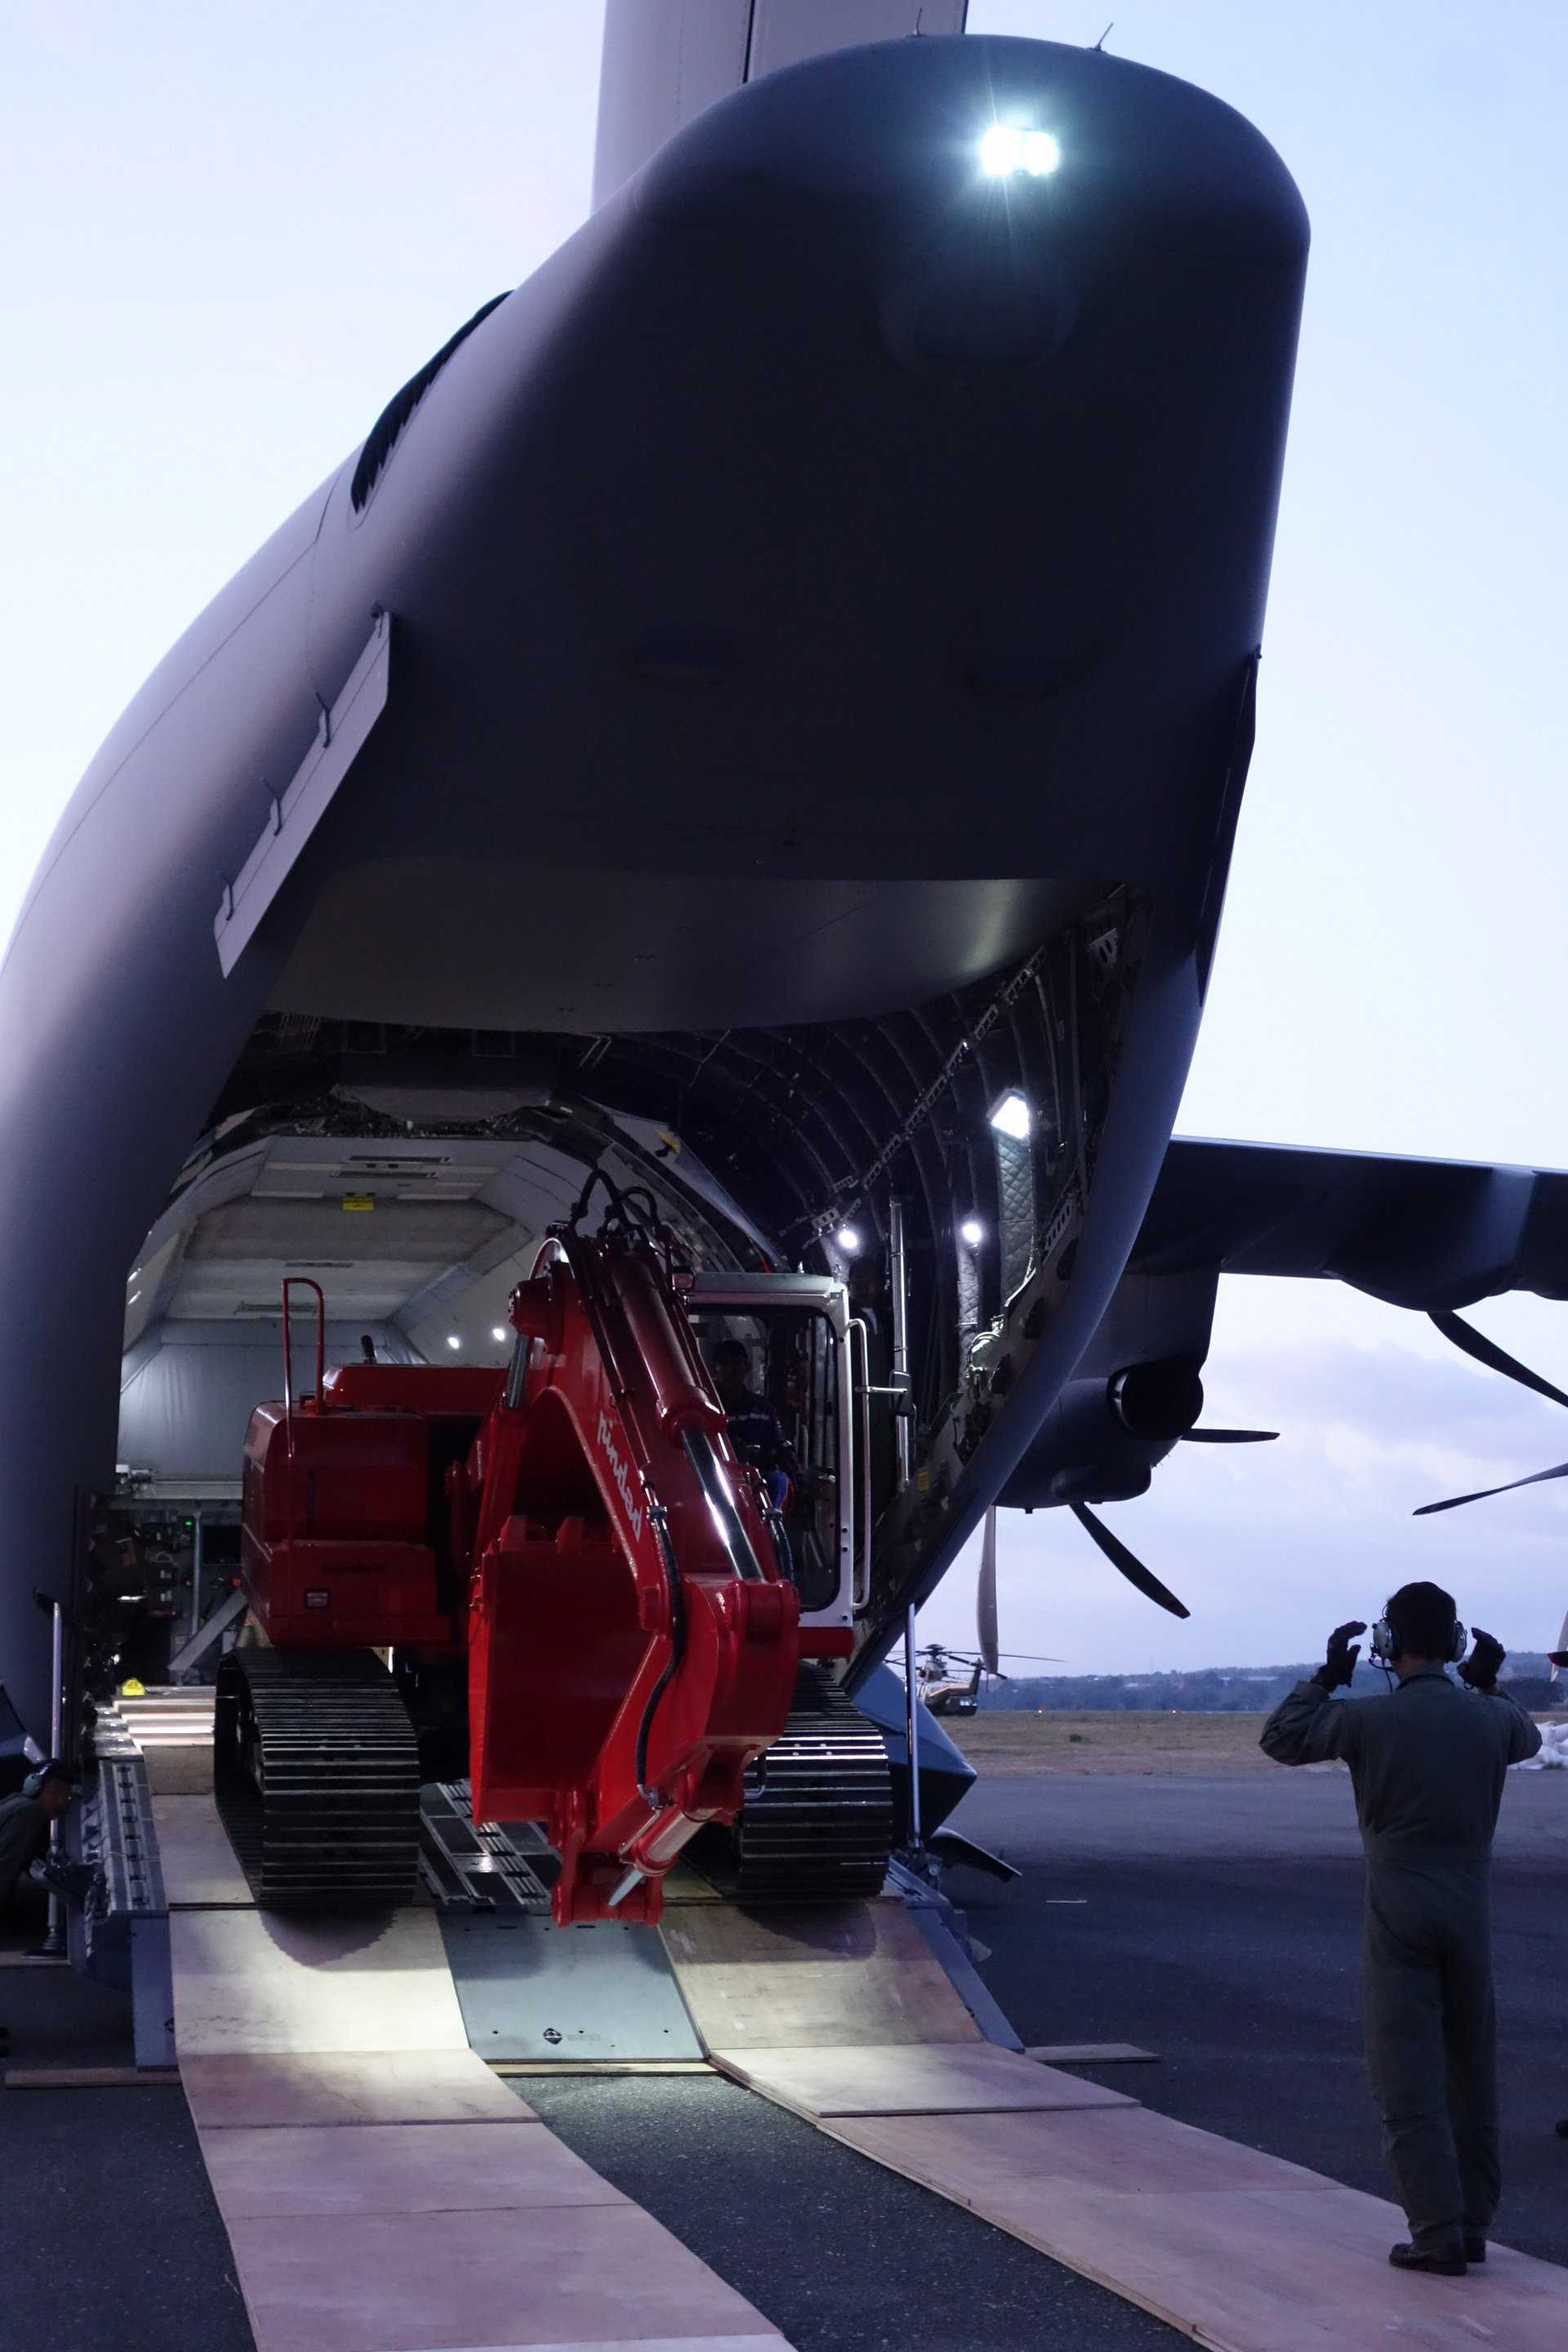 An A400M has been delivering relief material to Palu, Indonesia to support the victims of an earthquake and subsequent tsunami, which devastated the city on 28th September